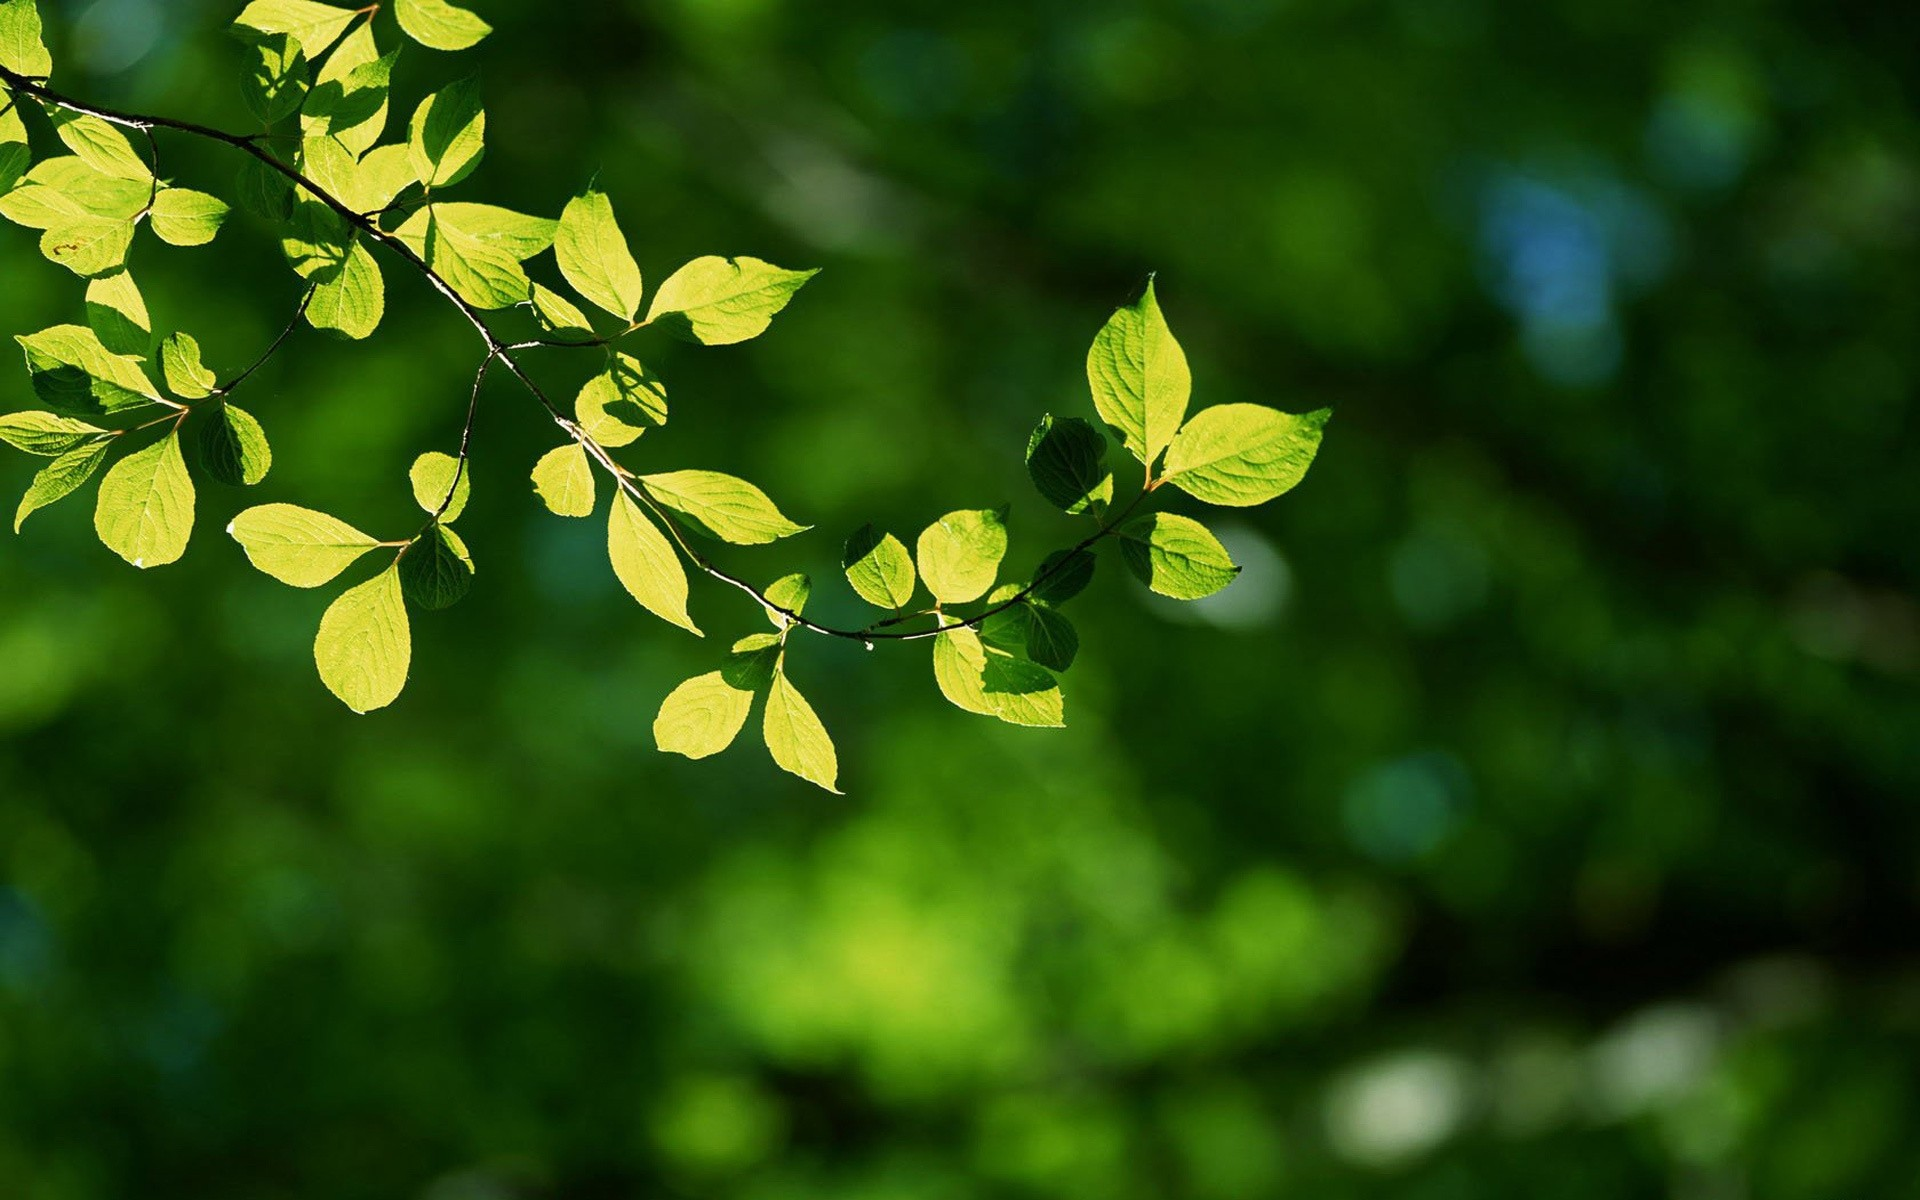 Nature Forest Leaves Depth Of Field Wallpaper 1920x1200